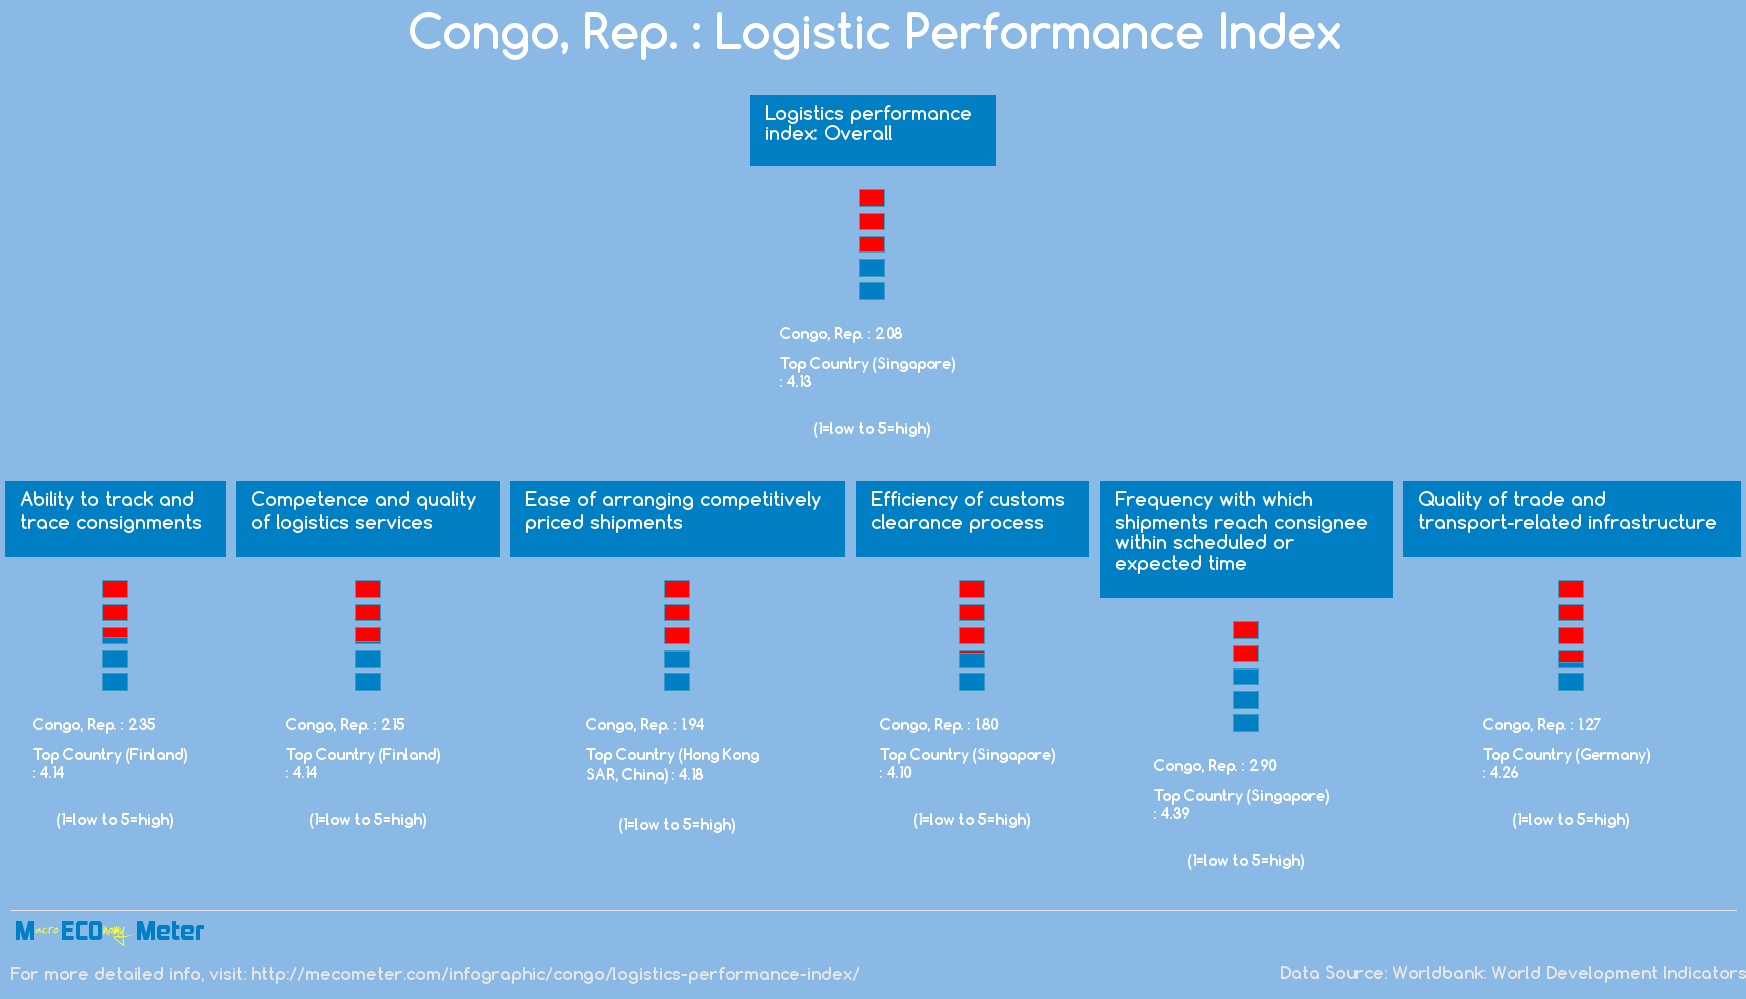 Congo : Logistic Performance Index